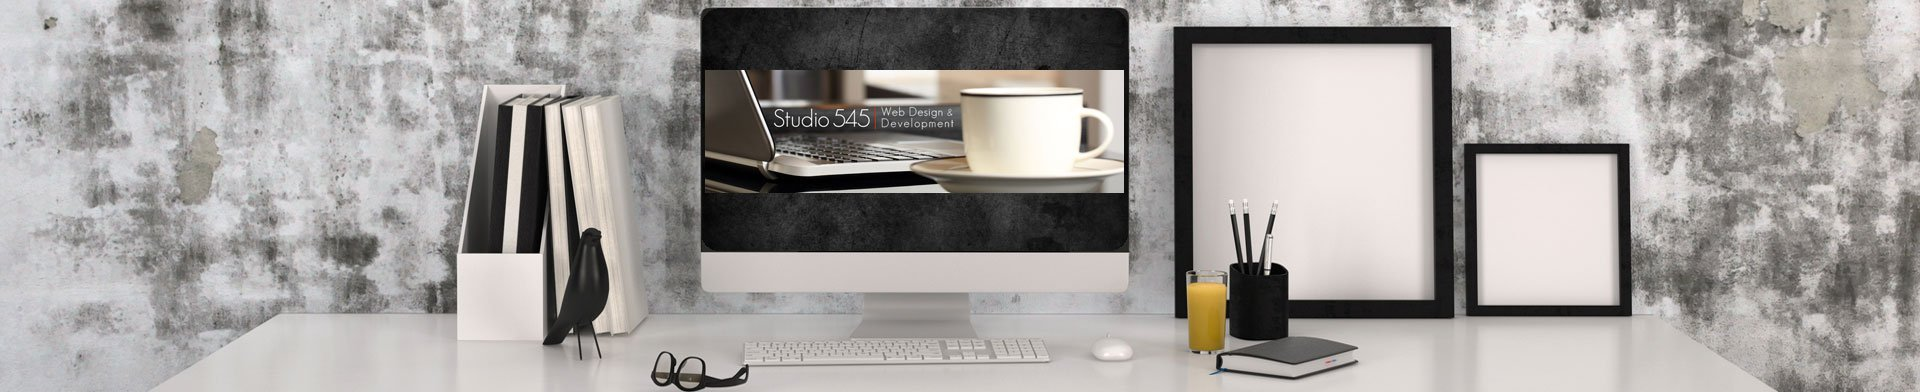 Studio 545 Website Design & Development Services